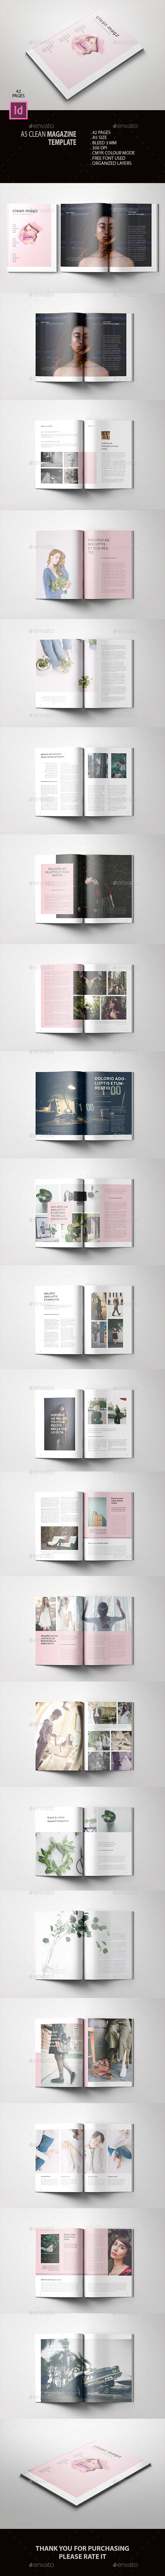 A5 Clean Magazine Template - Magazines Print Templates